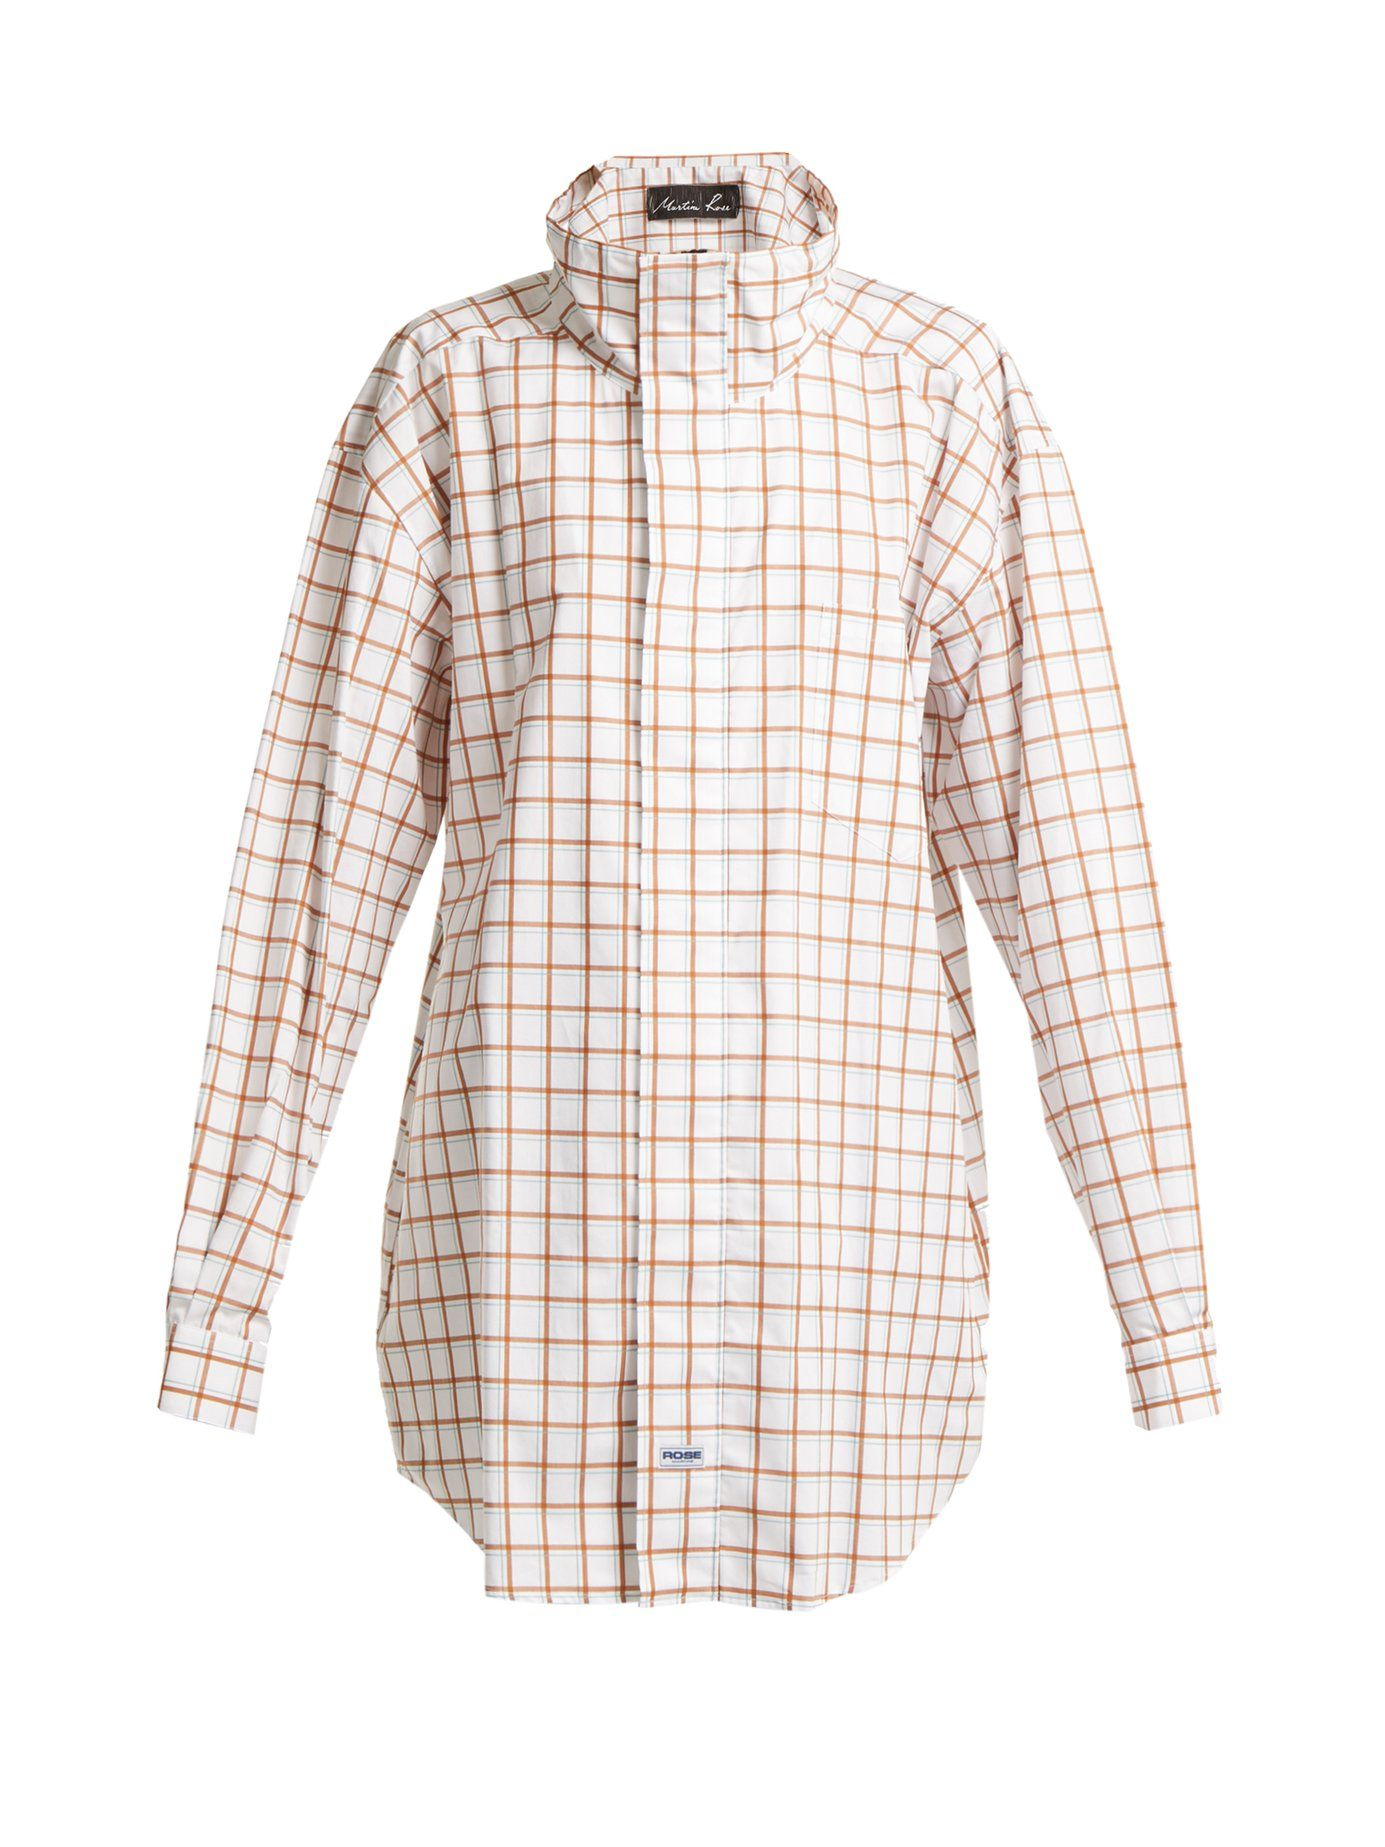 Footaction Sale Online Footlocker Cheap Online Checked high-neck cotton shirt Martine Rose Newest Online Manchester Great Sale Online Cheapest Vvl6f97u